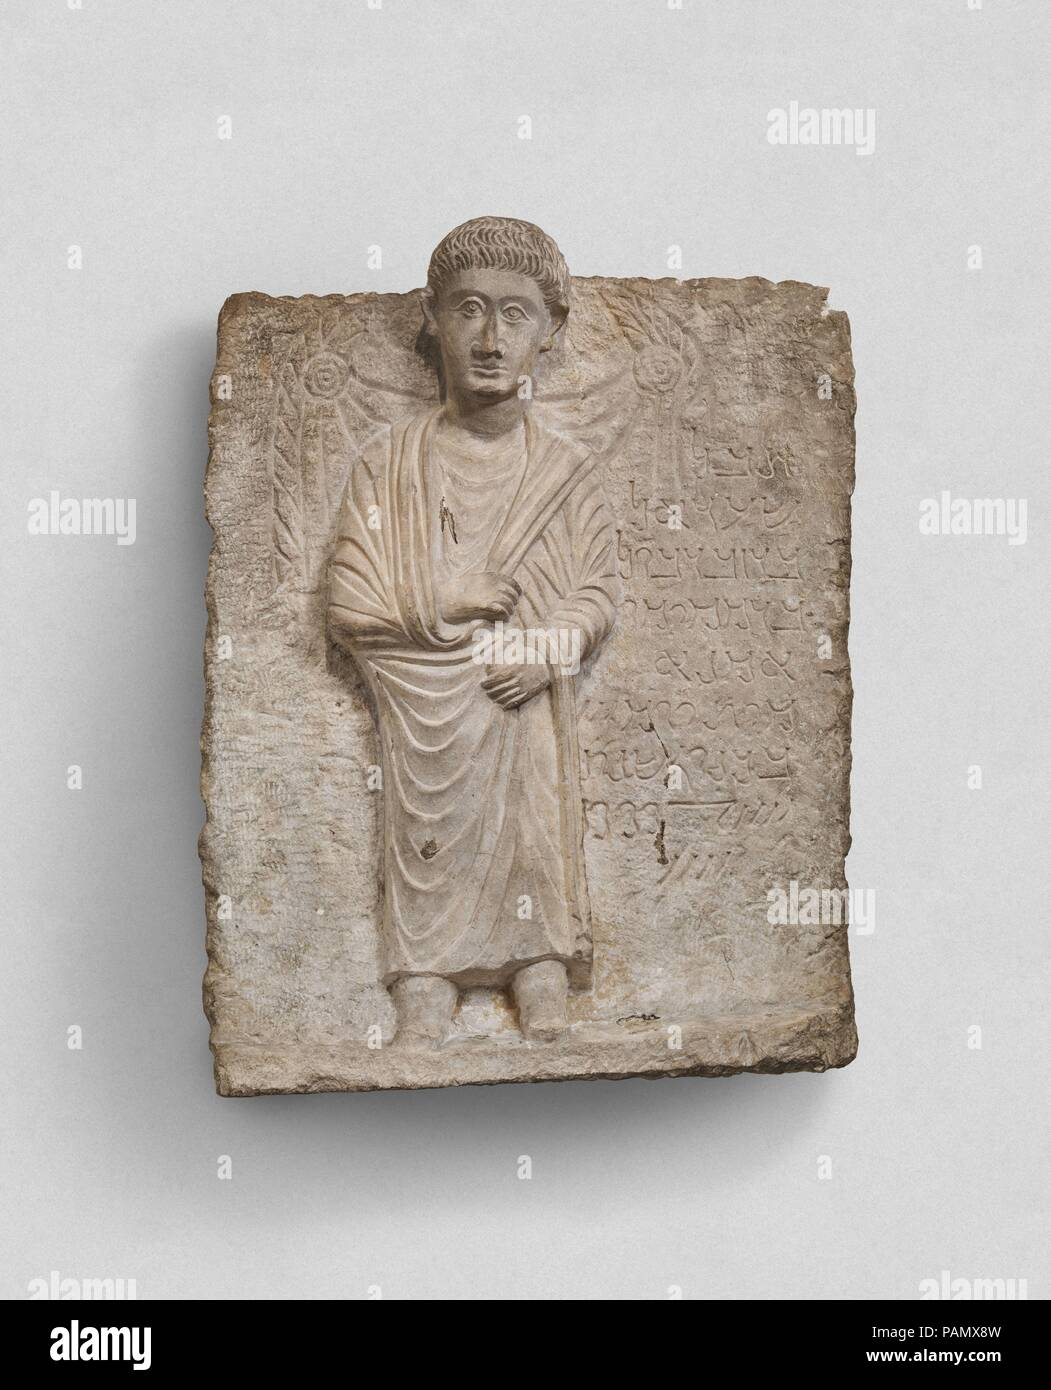 Funerary relief. Dimensions: 20.63 x 15.63 in. (52.4 x 39.7 cm). Date: ca. 172.  Inscription:  1 Alas!   2 Shu'adel,   3 son of Zabdibol,   4 son of Mokimu,   5 the craftsman.   6 Died the 3rd day   7 of Kanun, the year   8-9 484.  Transliteration:  1 hbl  2 s?d?l  3 br zbdbwl  4 br mqymw  5 ?mn?  6 myt ywm 3  7 bknwn snt  8 4.100+80  9 +4  This relief is a type of funerary monument characteristic of the prosperous caravan city of Palmyra during the first three centuries A.D. Reliefs with a representation of the deceased and a short identifying inscription were used to seal burial niches in el - Stock Image